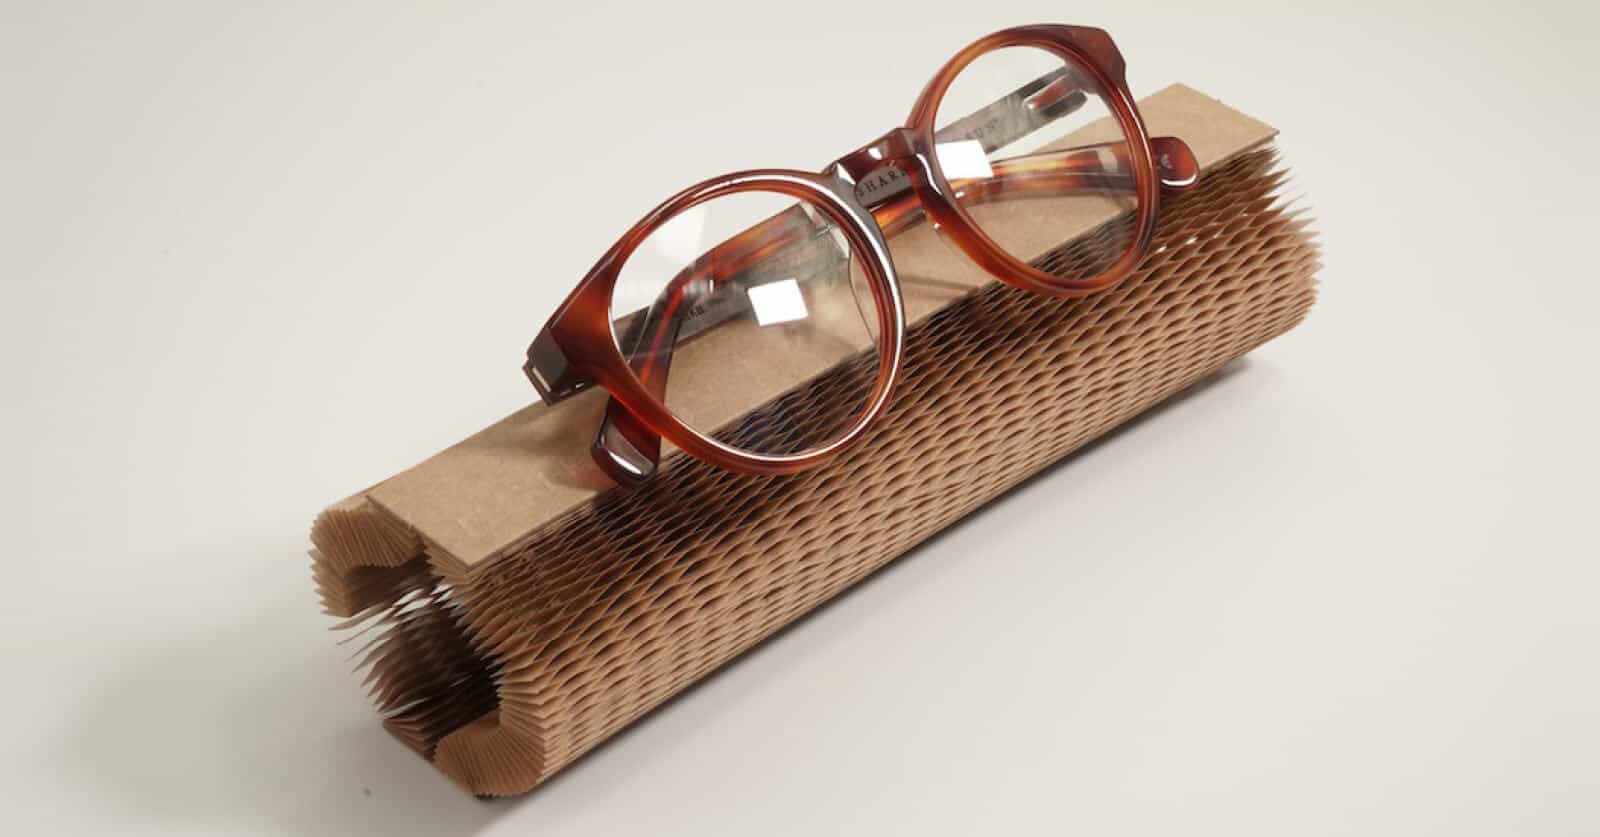 Bird Eyewear use Flexi-Hex Air paper packaging to protect sustainable glasses